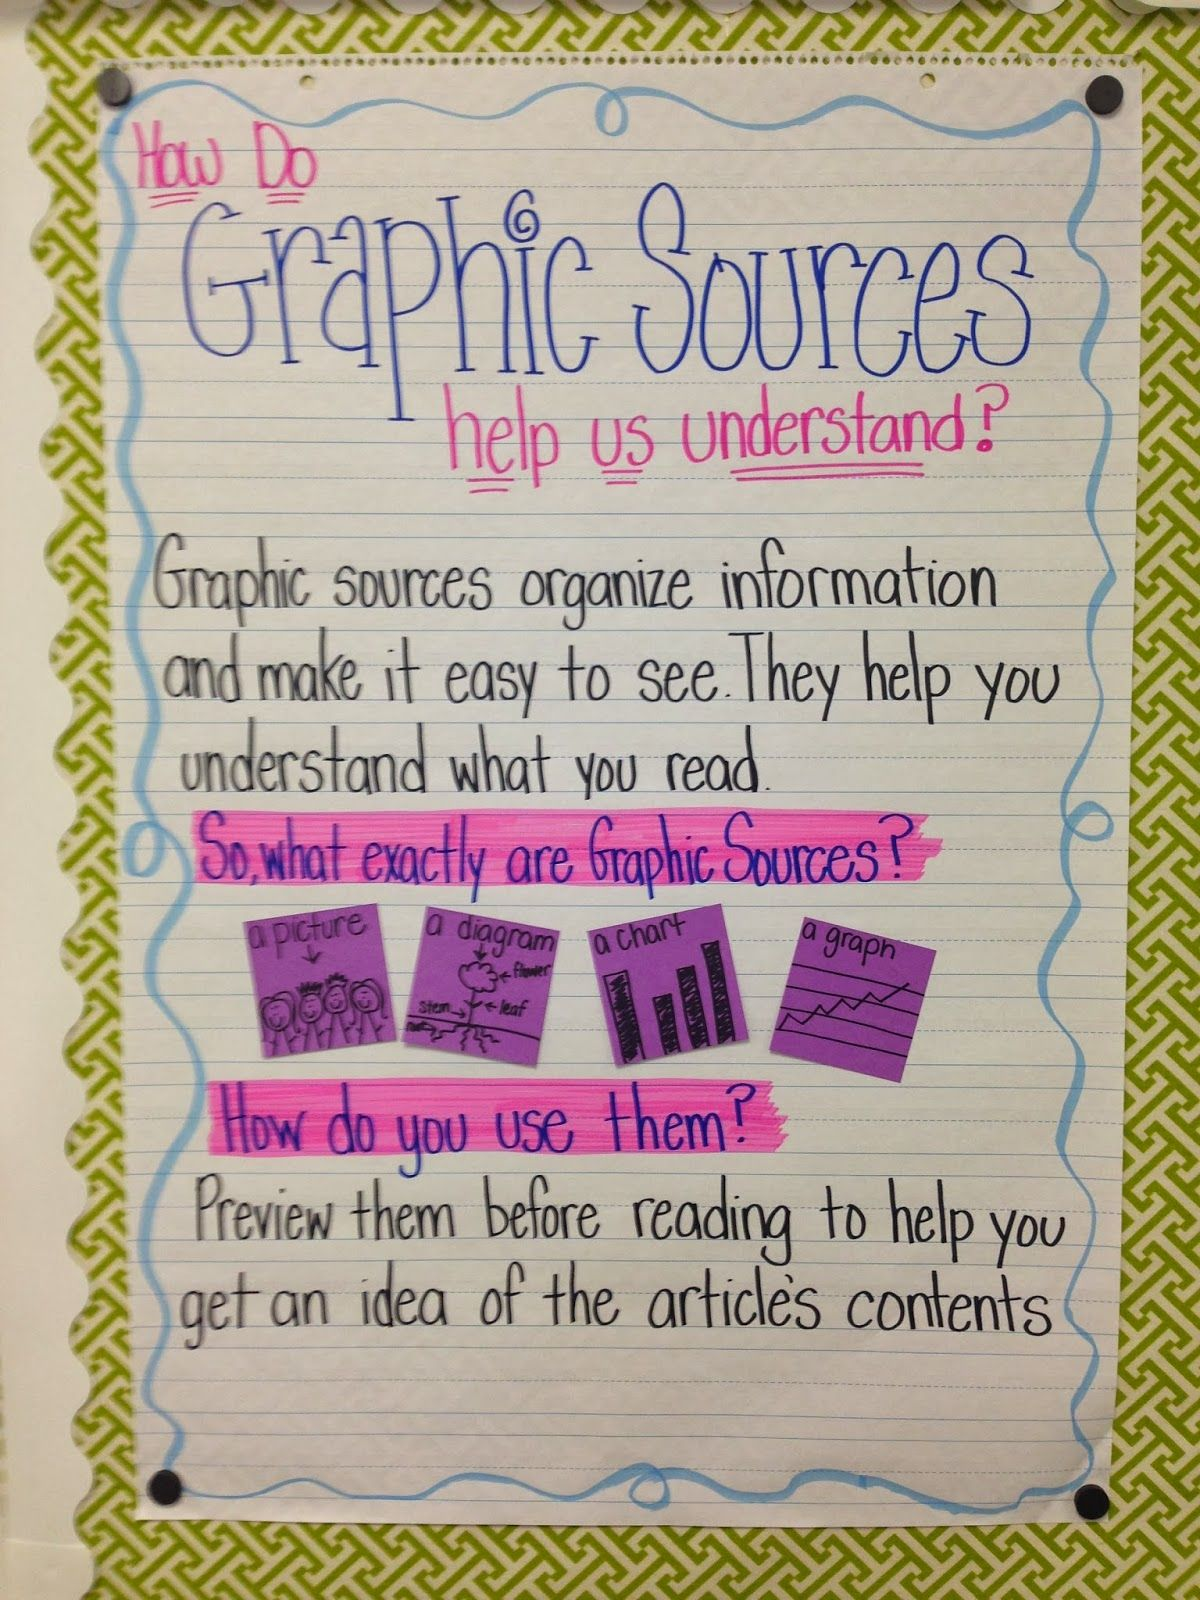 worksheet Graphic Sources Worksheets 78 best images about 3rd grade interpreting graphic sources on pinterest texts text features and graphics